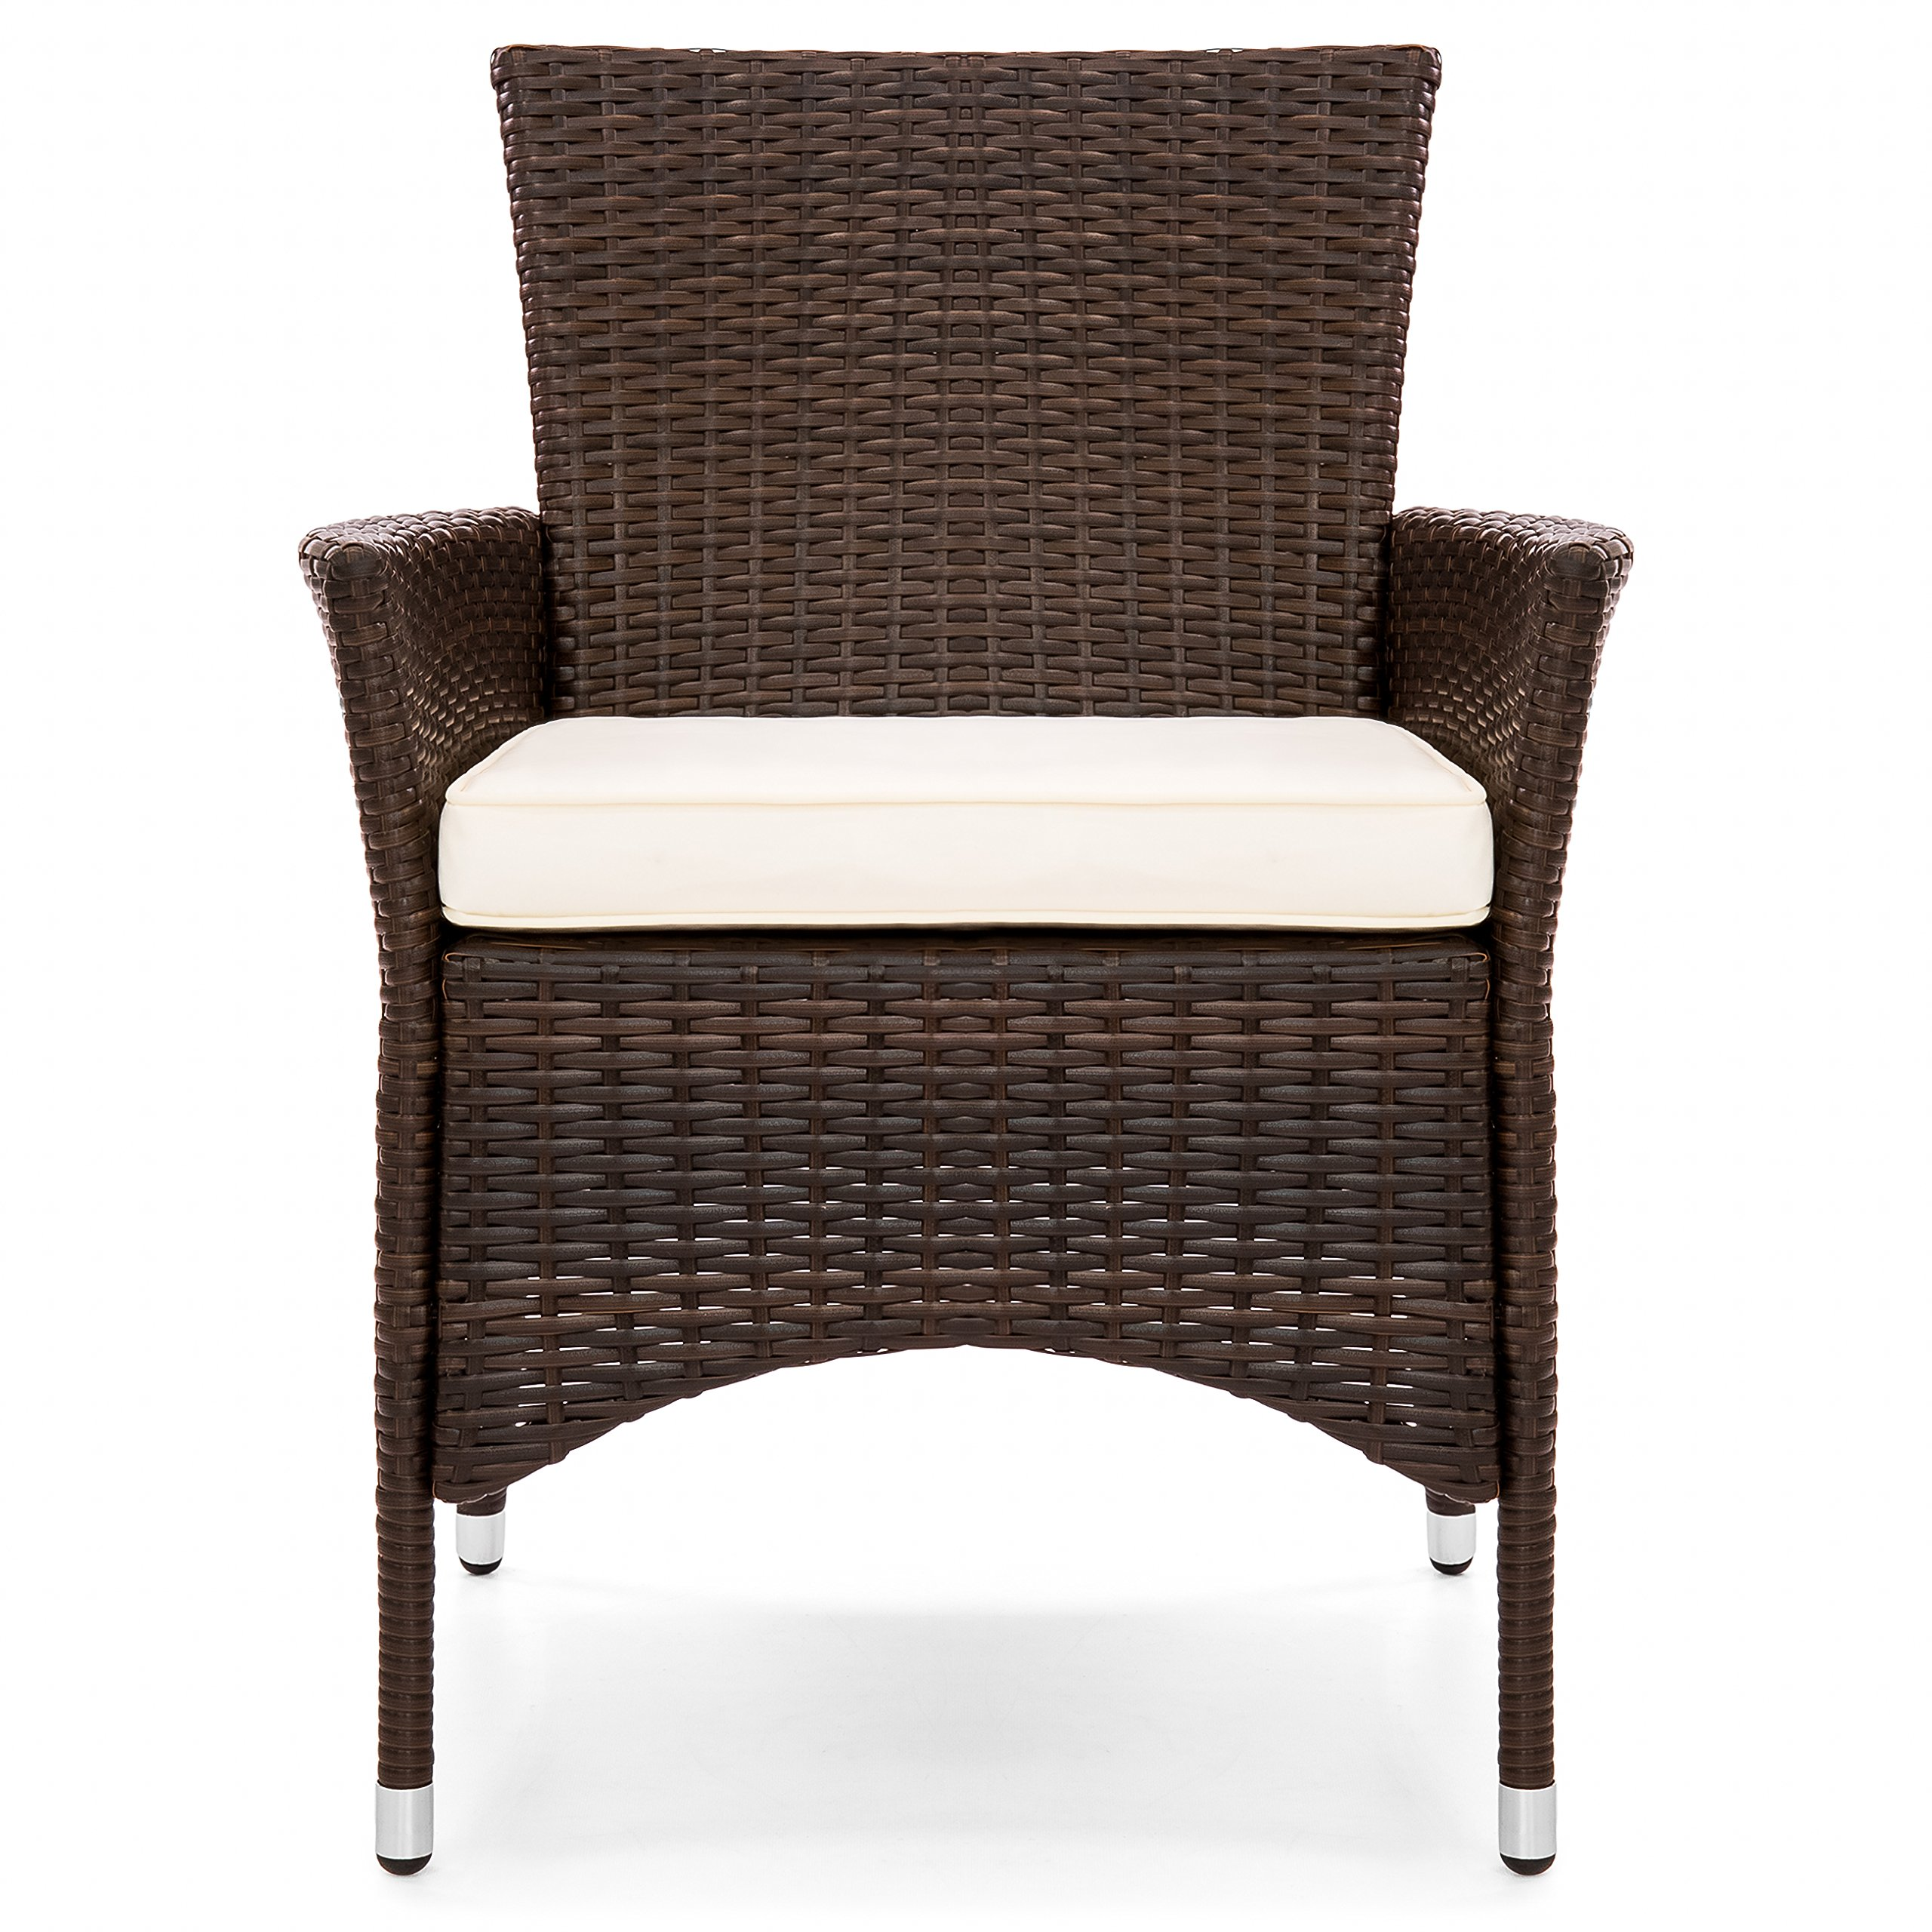 Best Choice Products Set of 2 Modern Contemporary Wicker Patio Dining Chairs w/Water Resistant Cushion - Brown by Best Choice Products (Image #2)